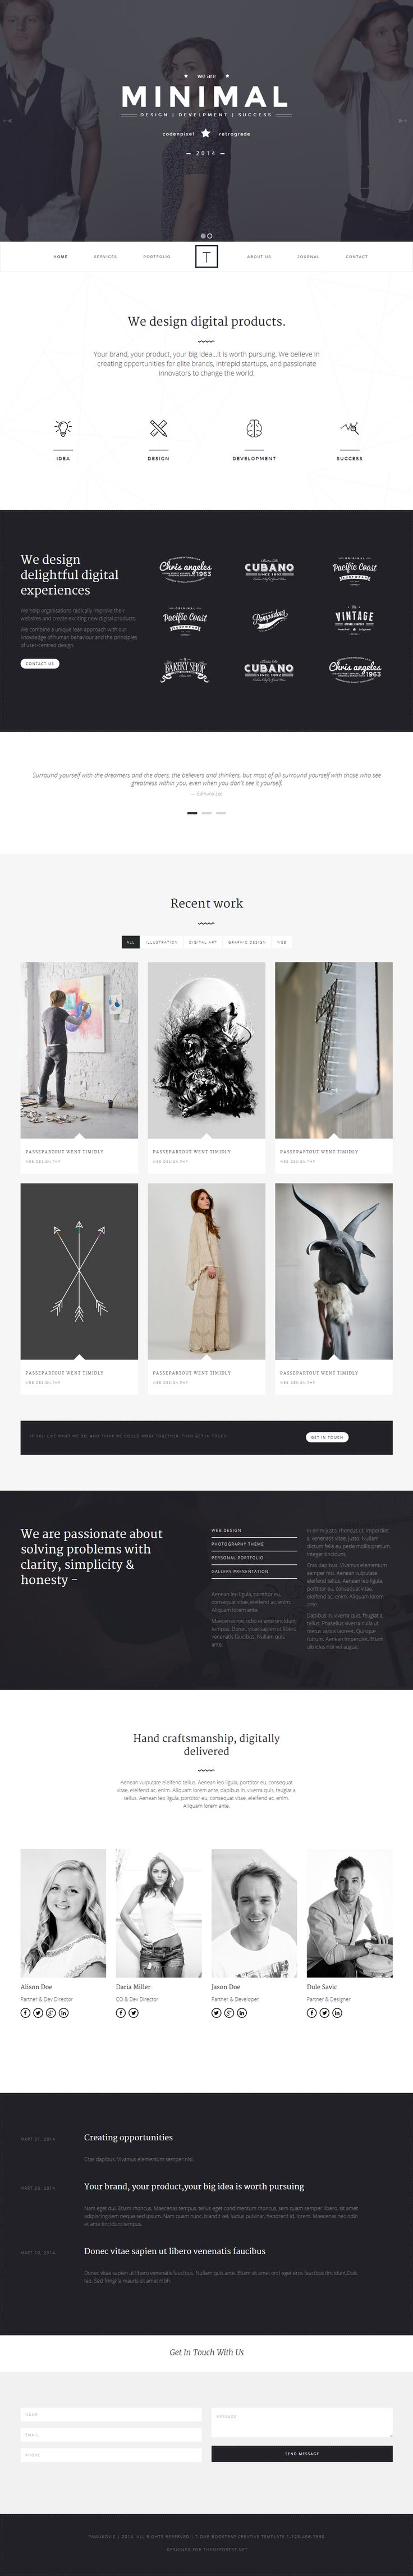 T-ONE Clean & Minimal WordPress Theme on Behance